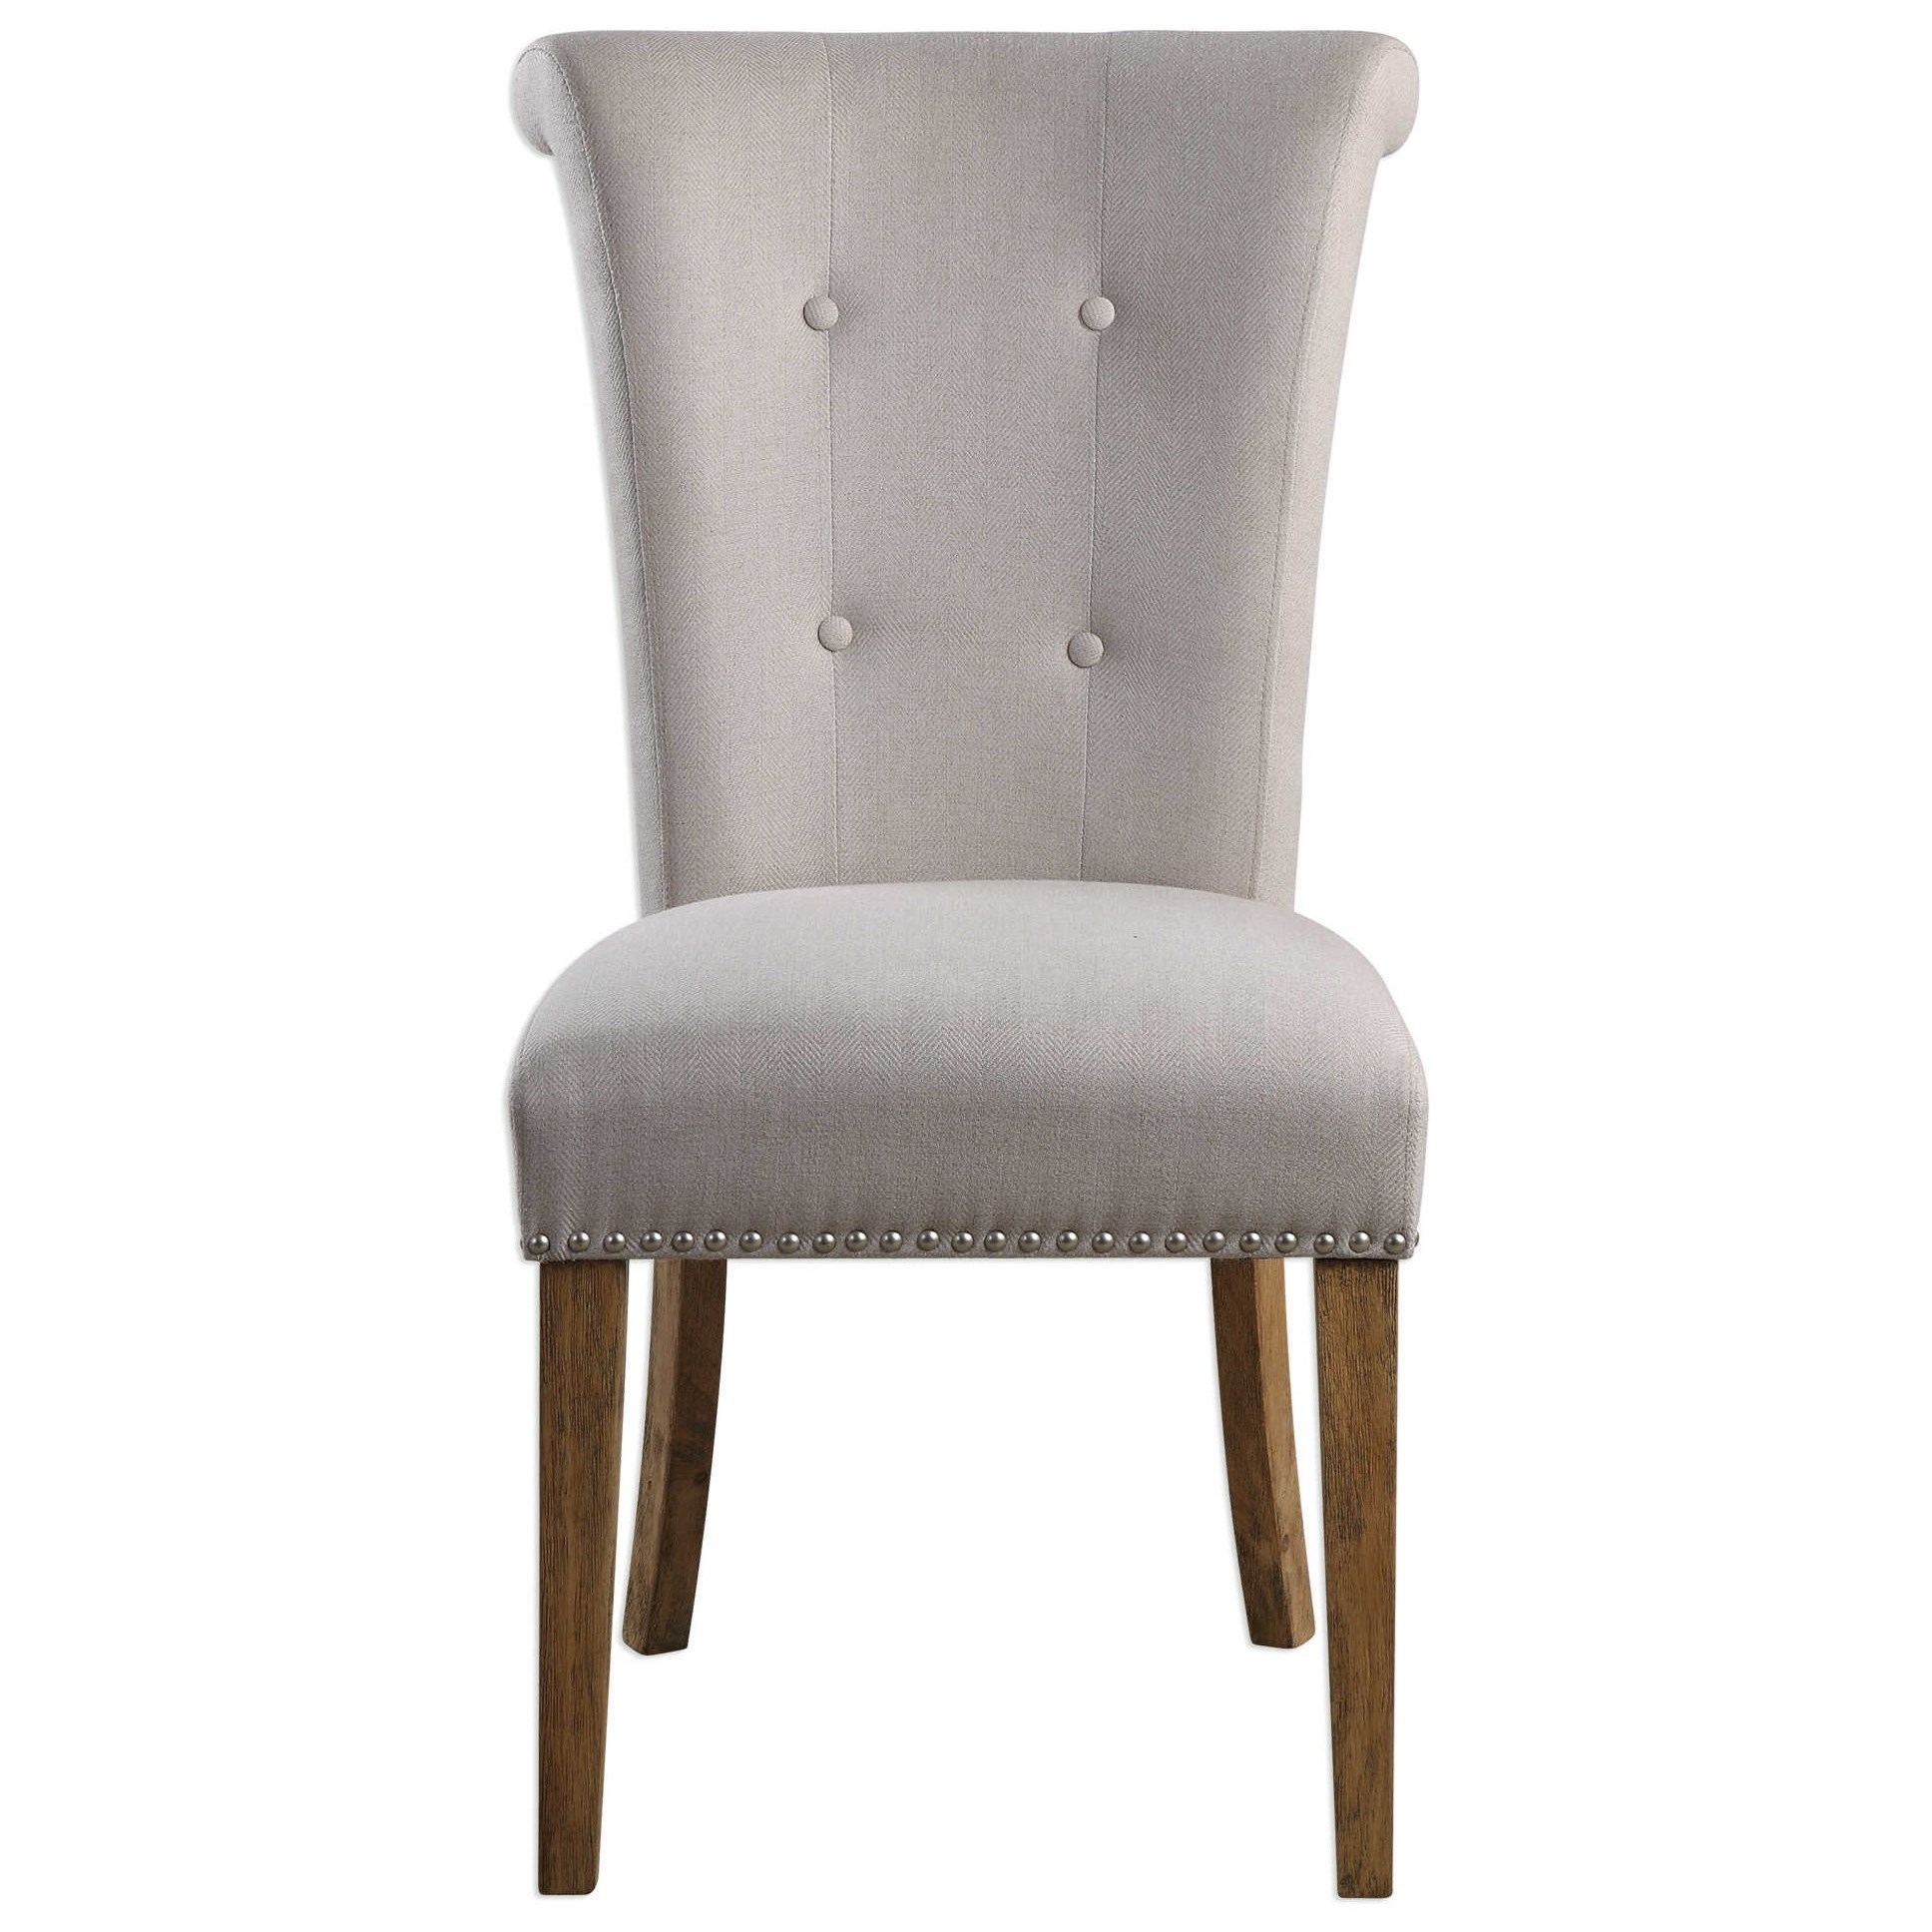 Accent Furniture Lucasse Oatmeal Dining Chair by Uttermost at Goffena Furniture & Mattress Center